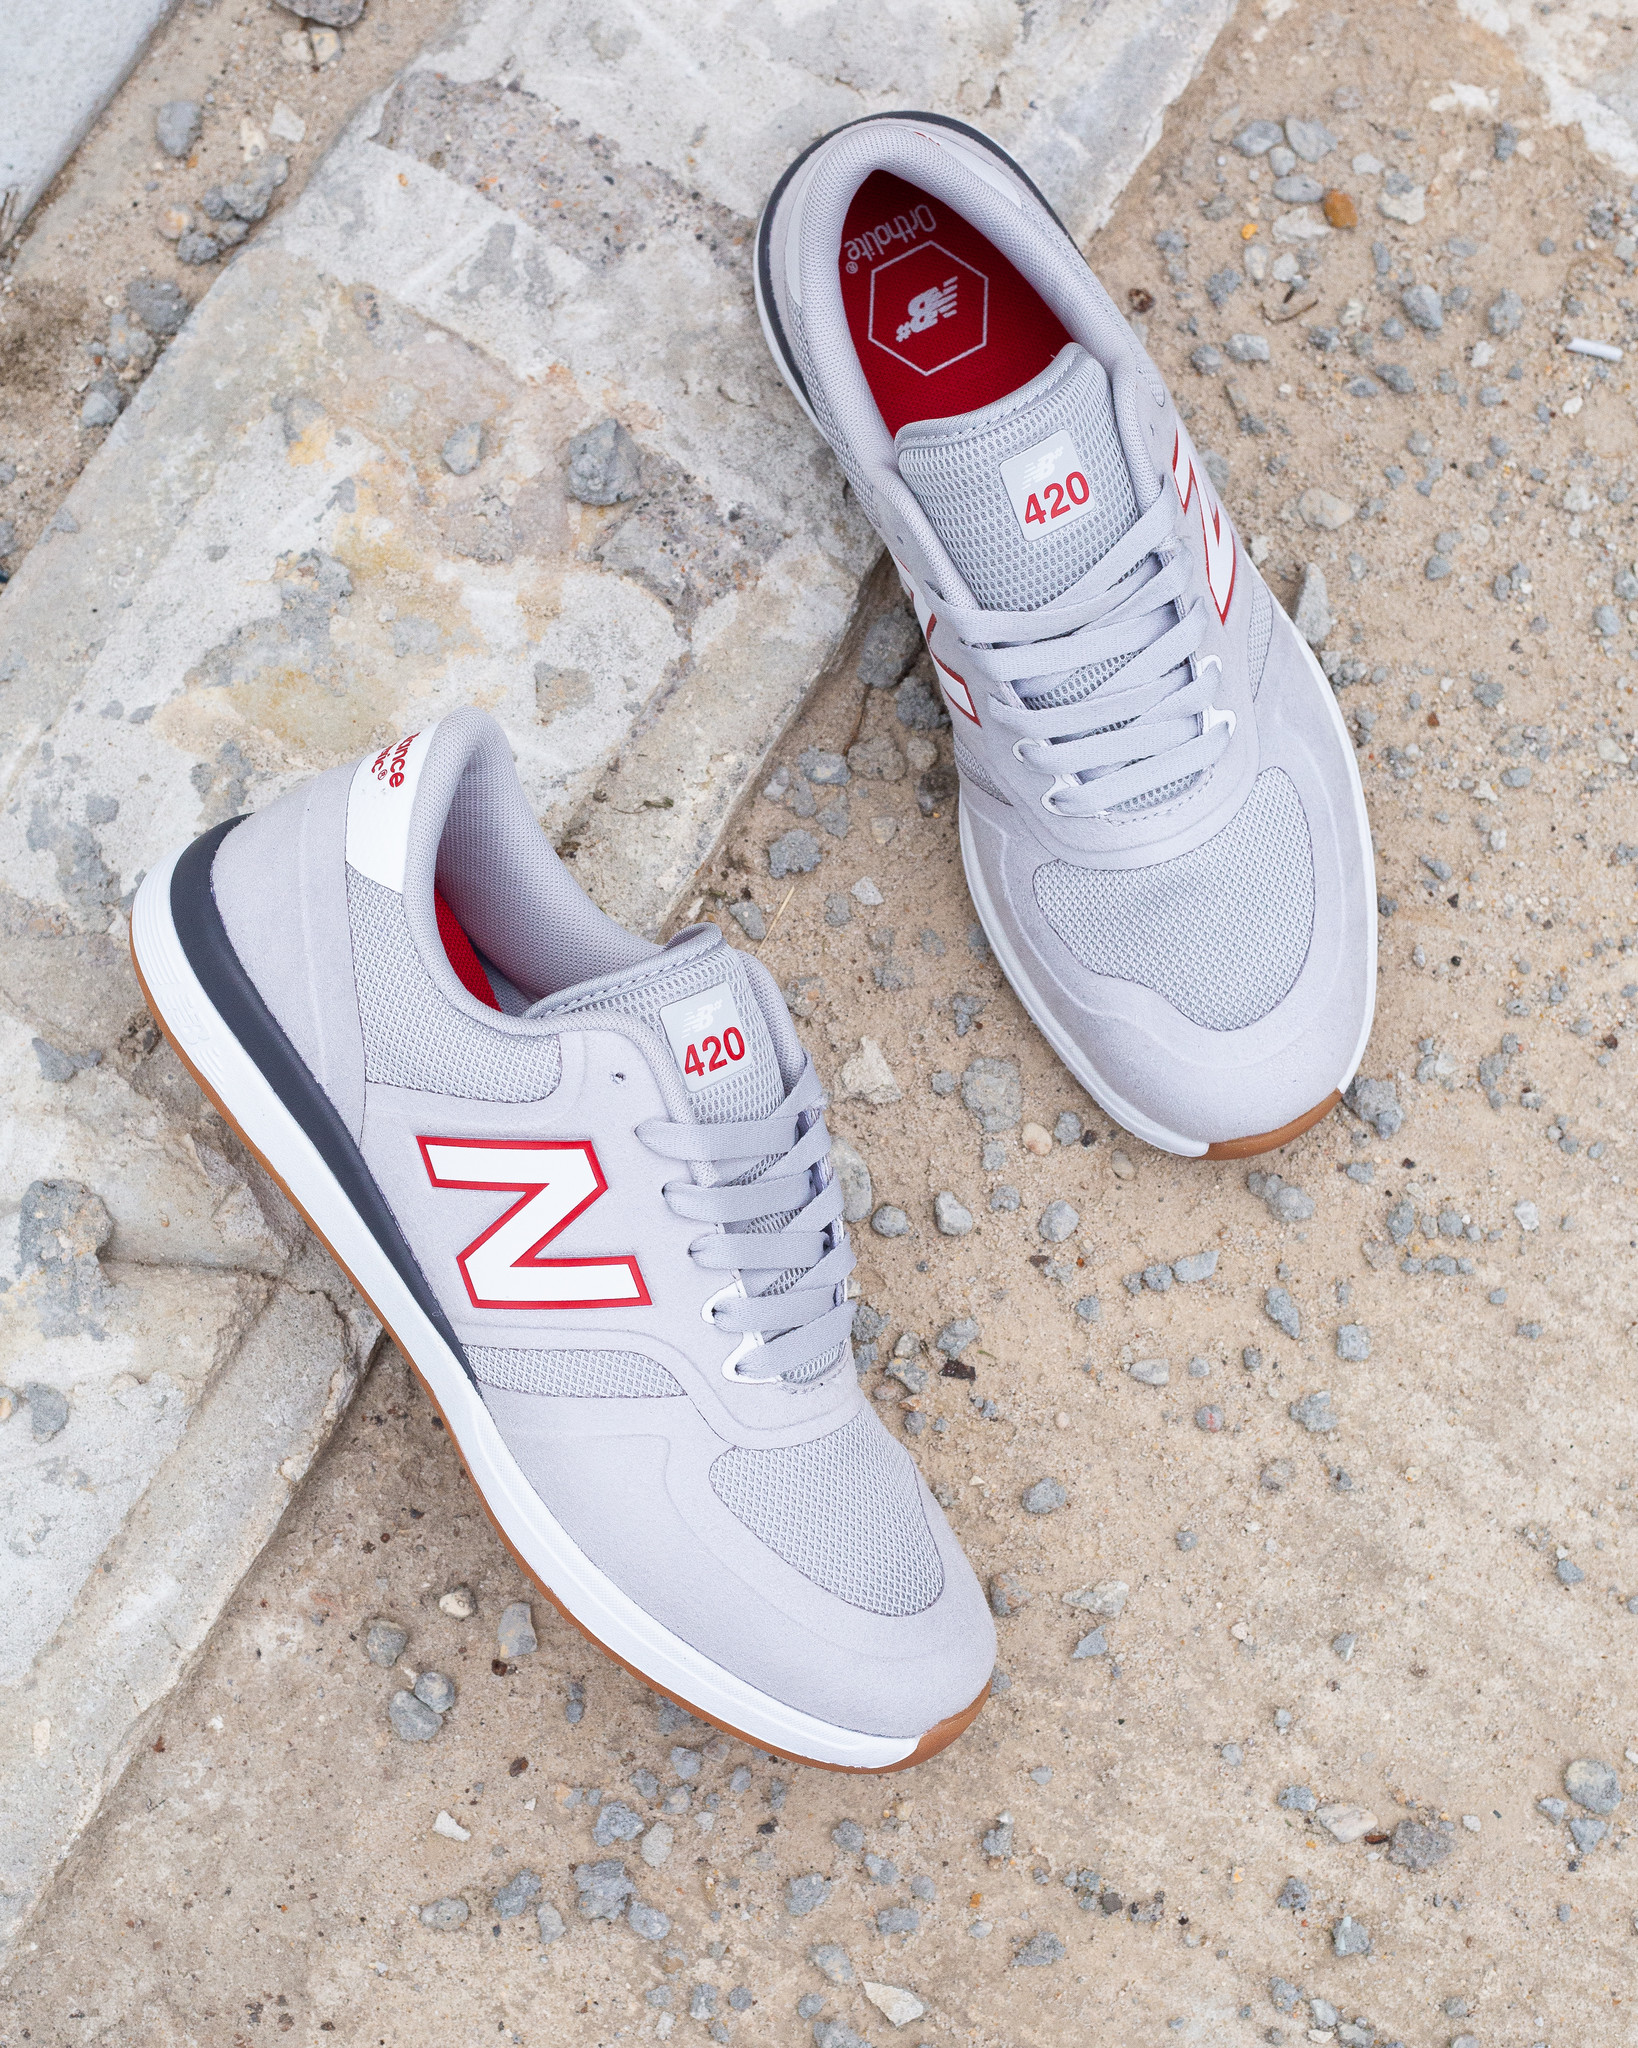 New Balance New Balance 420 Marquise Henry grey red white